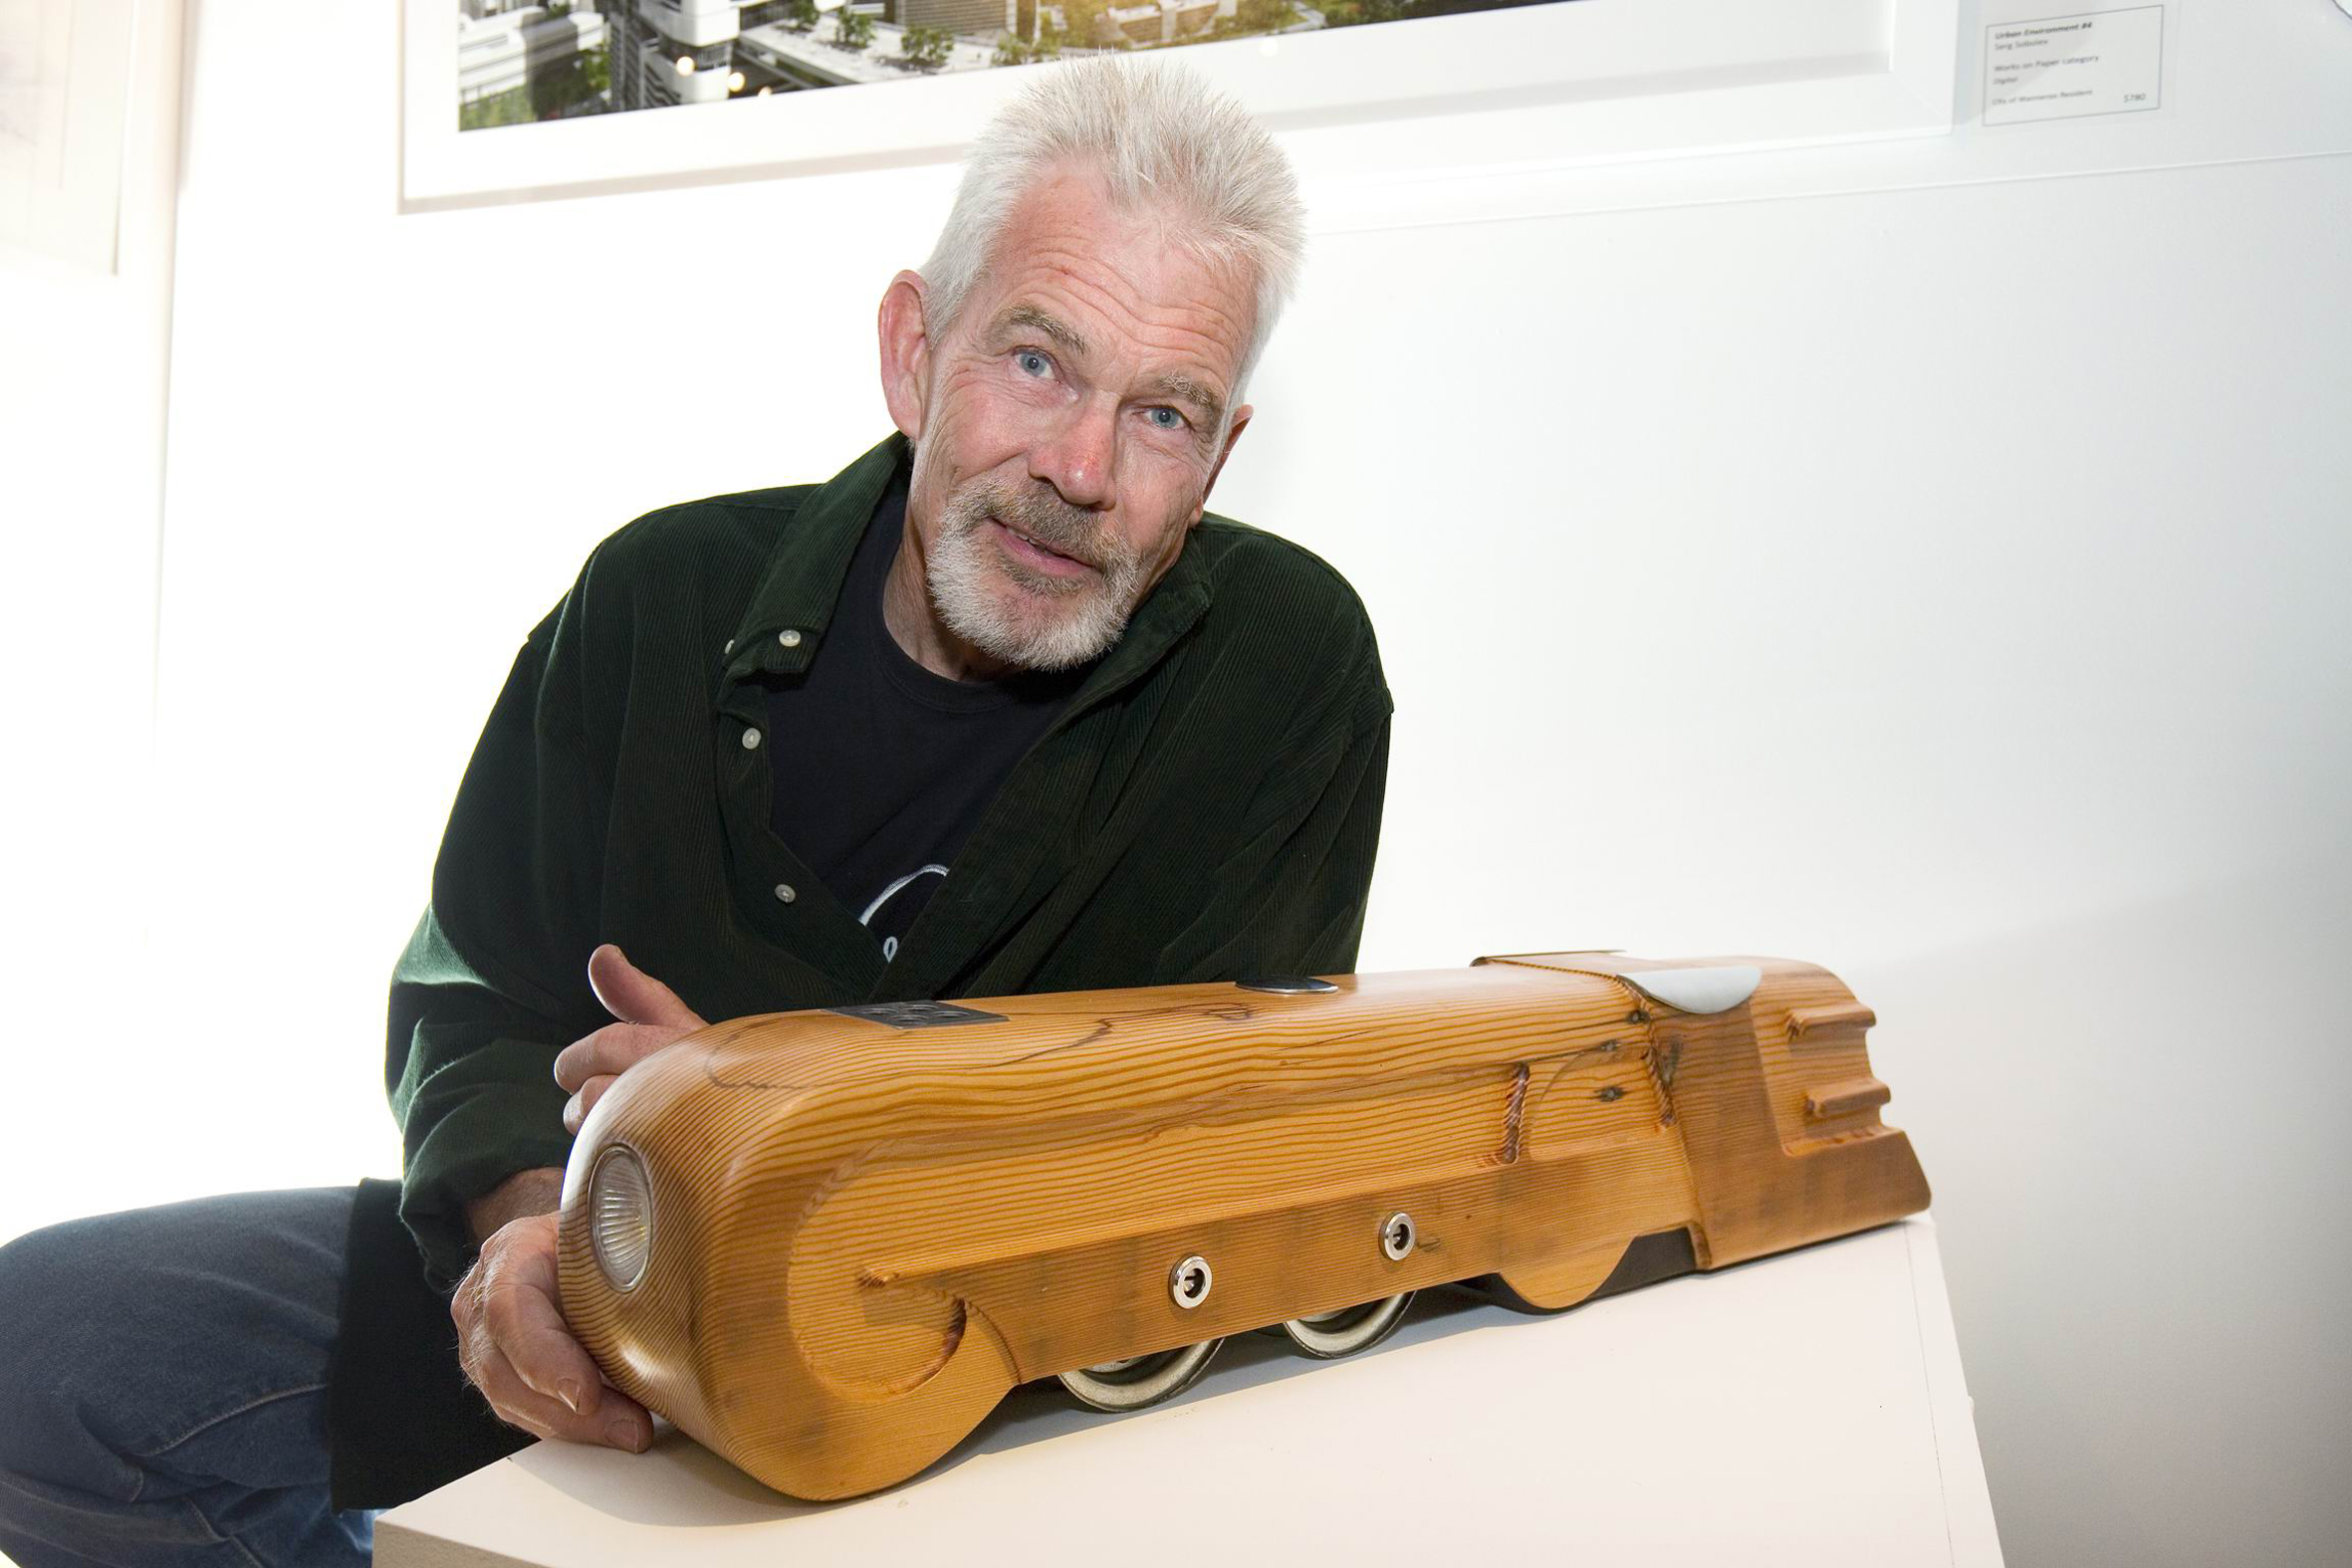 Ian Kay and his winning sculpture